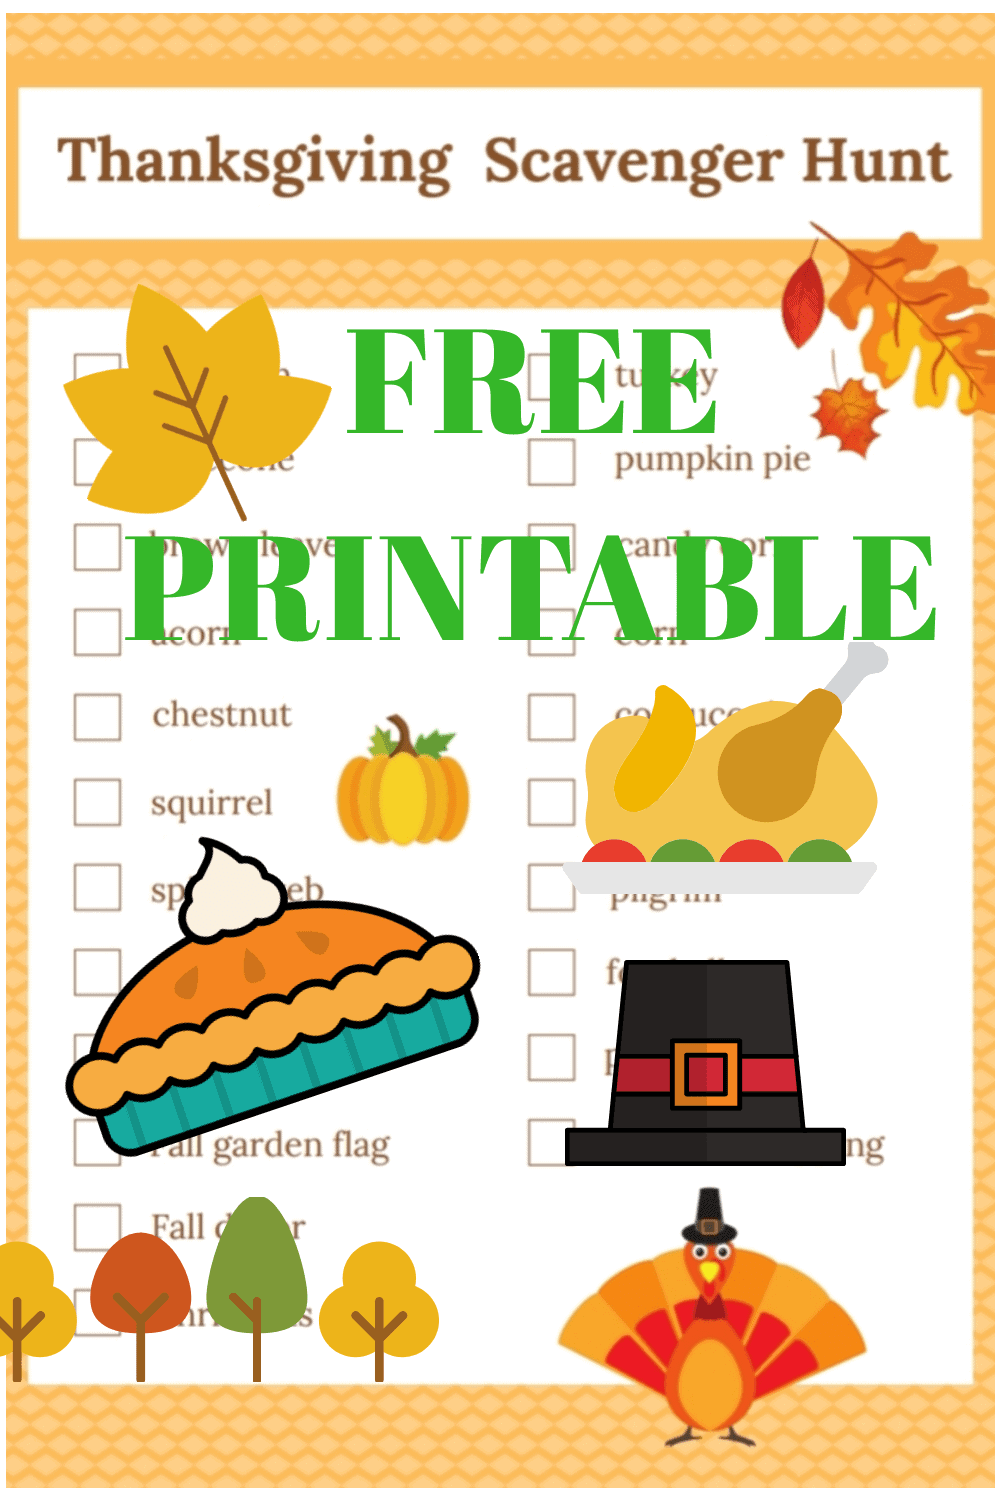 Free Printable Thanksgiving Scavenger Hunt for Kids